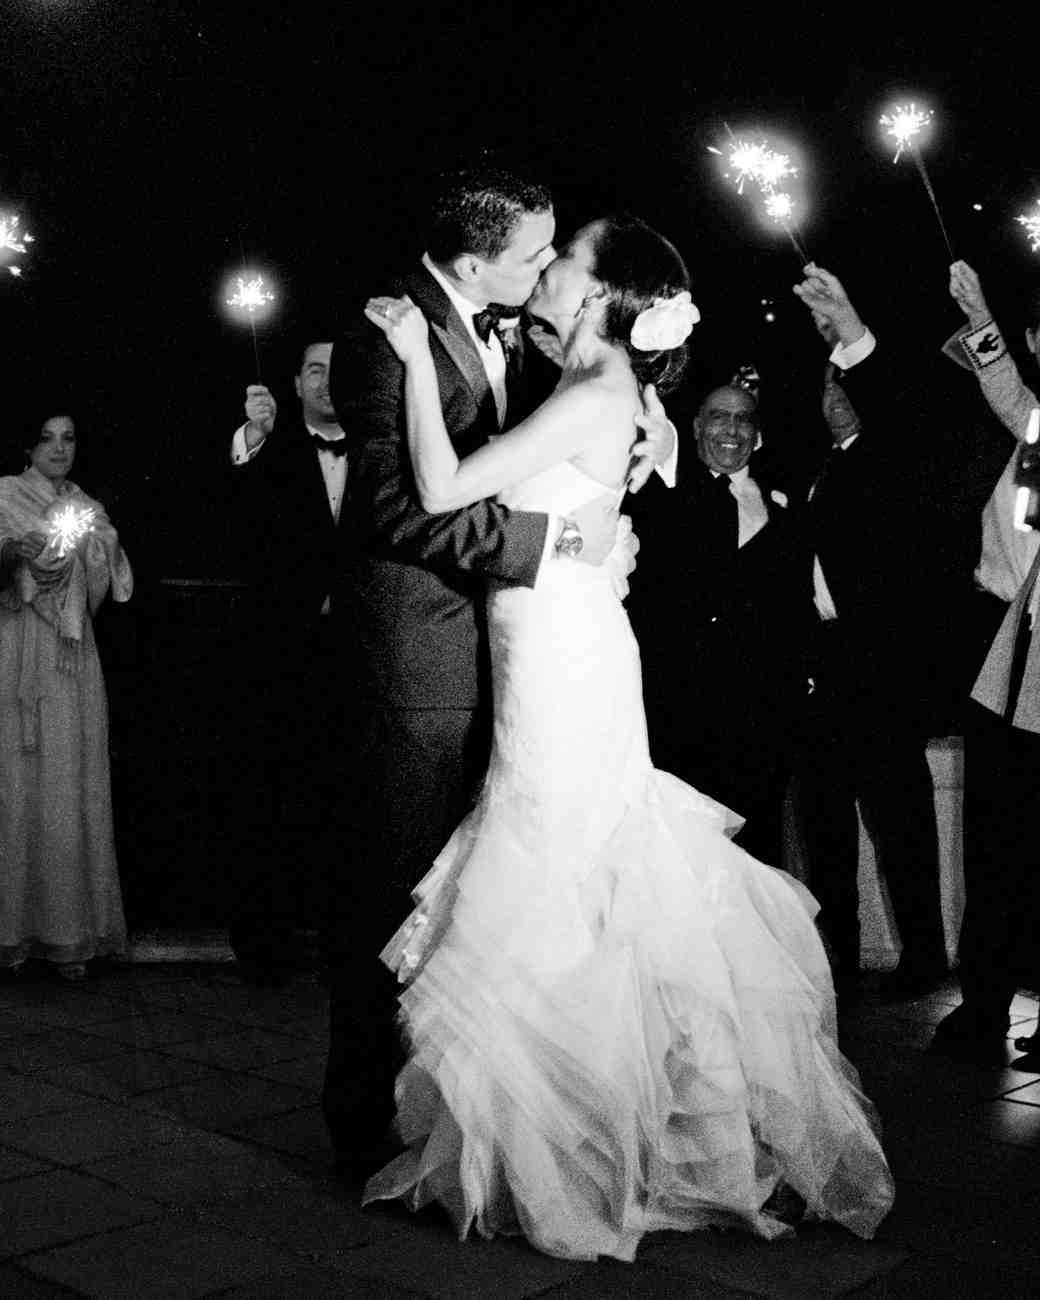 couple dancing by sparklers